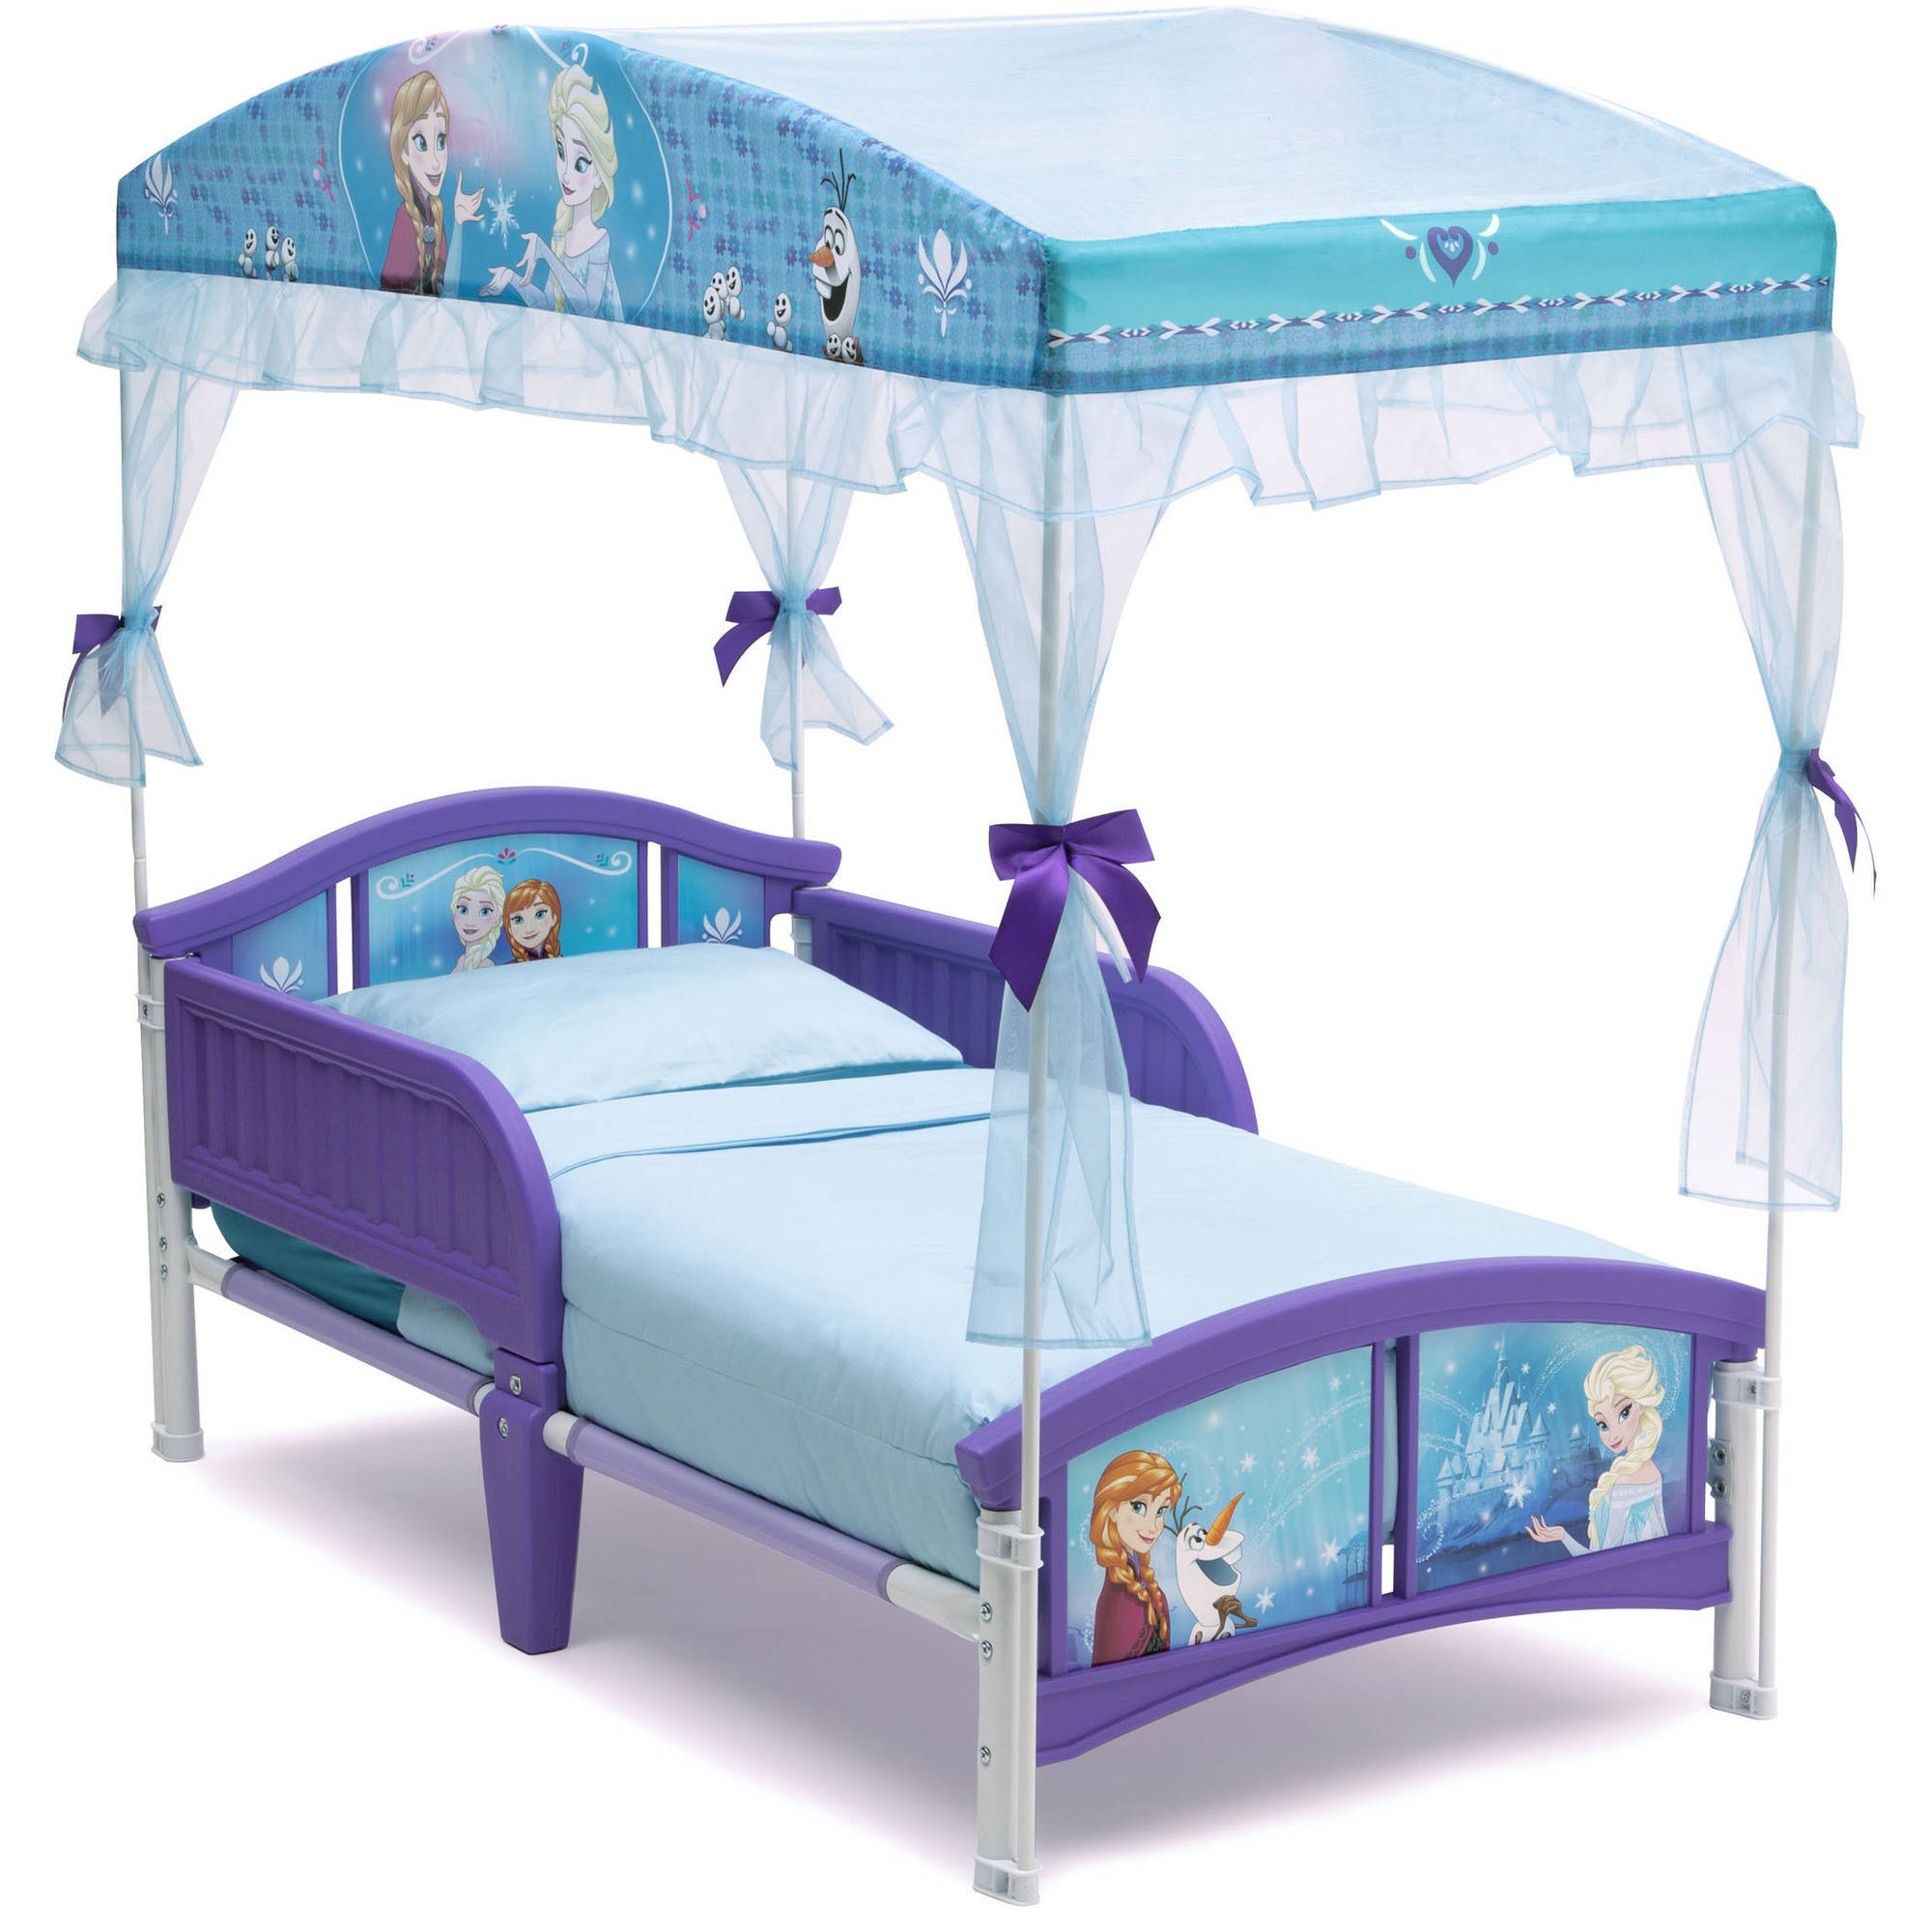 Kids bed tent canopy - Disney Or Nickelodeon Canopy Or Tent Toddler Bed With Mattress Walmart Com